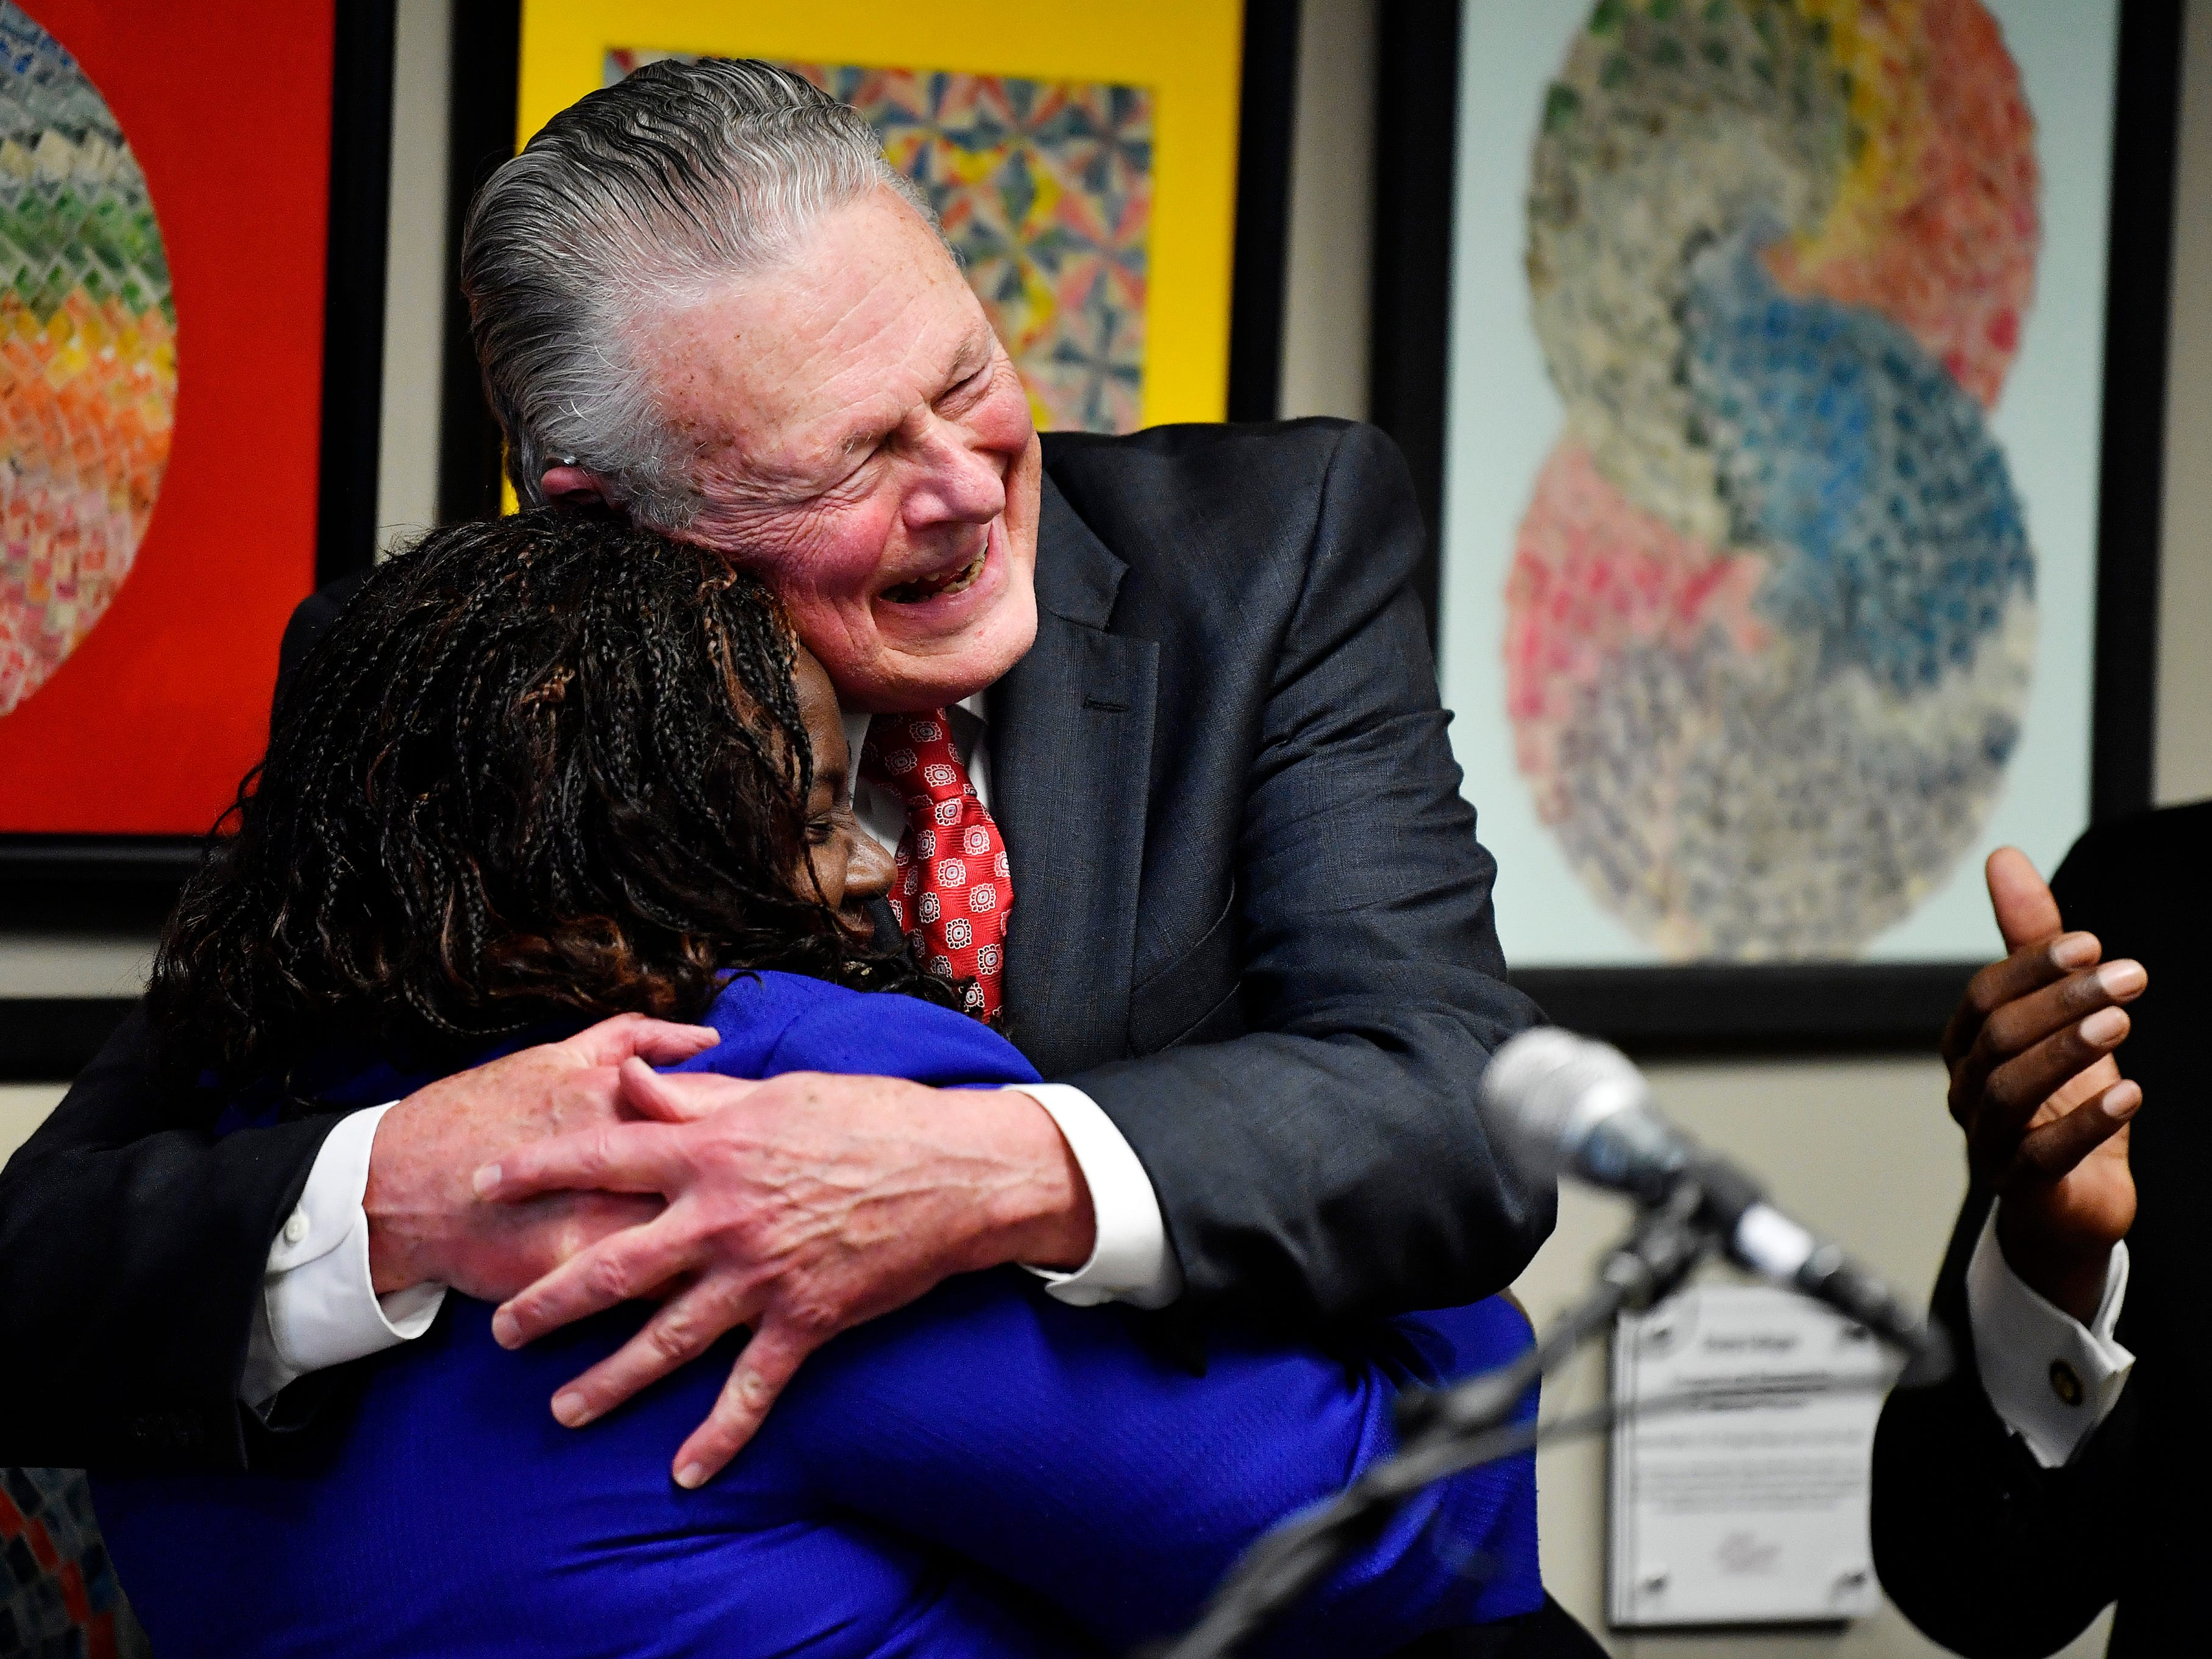 Attorney Charles Bone hugs Juvenile Court Judge Sheila Calloway at a press conference Monday, Jan. 7, 2019, in Nashville, Tenn., after Gov. Bill Haslam granted full clemency to Cyntoia Brown, and set an Aug. 7 release date for her from prison.